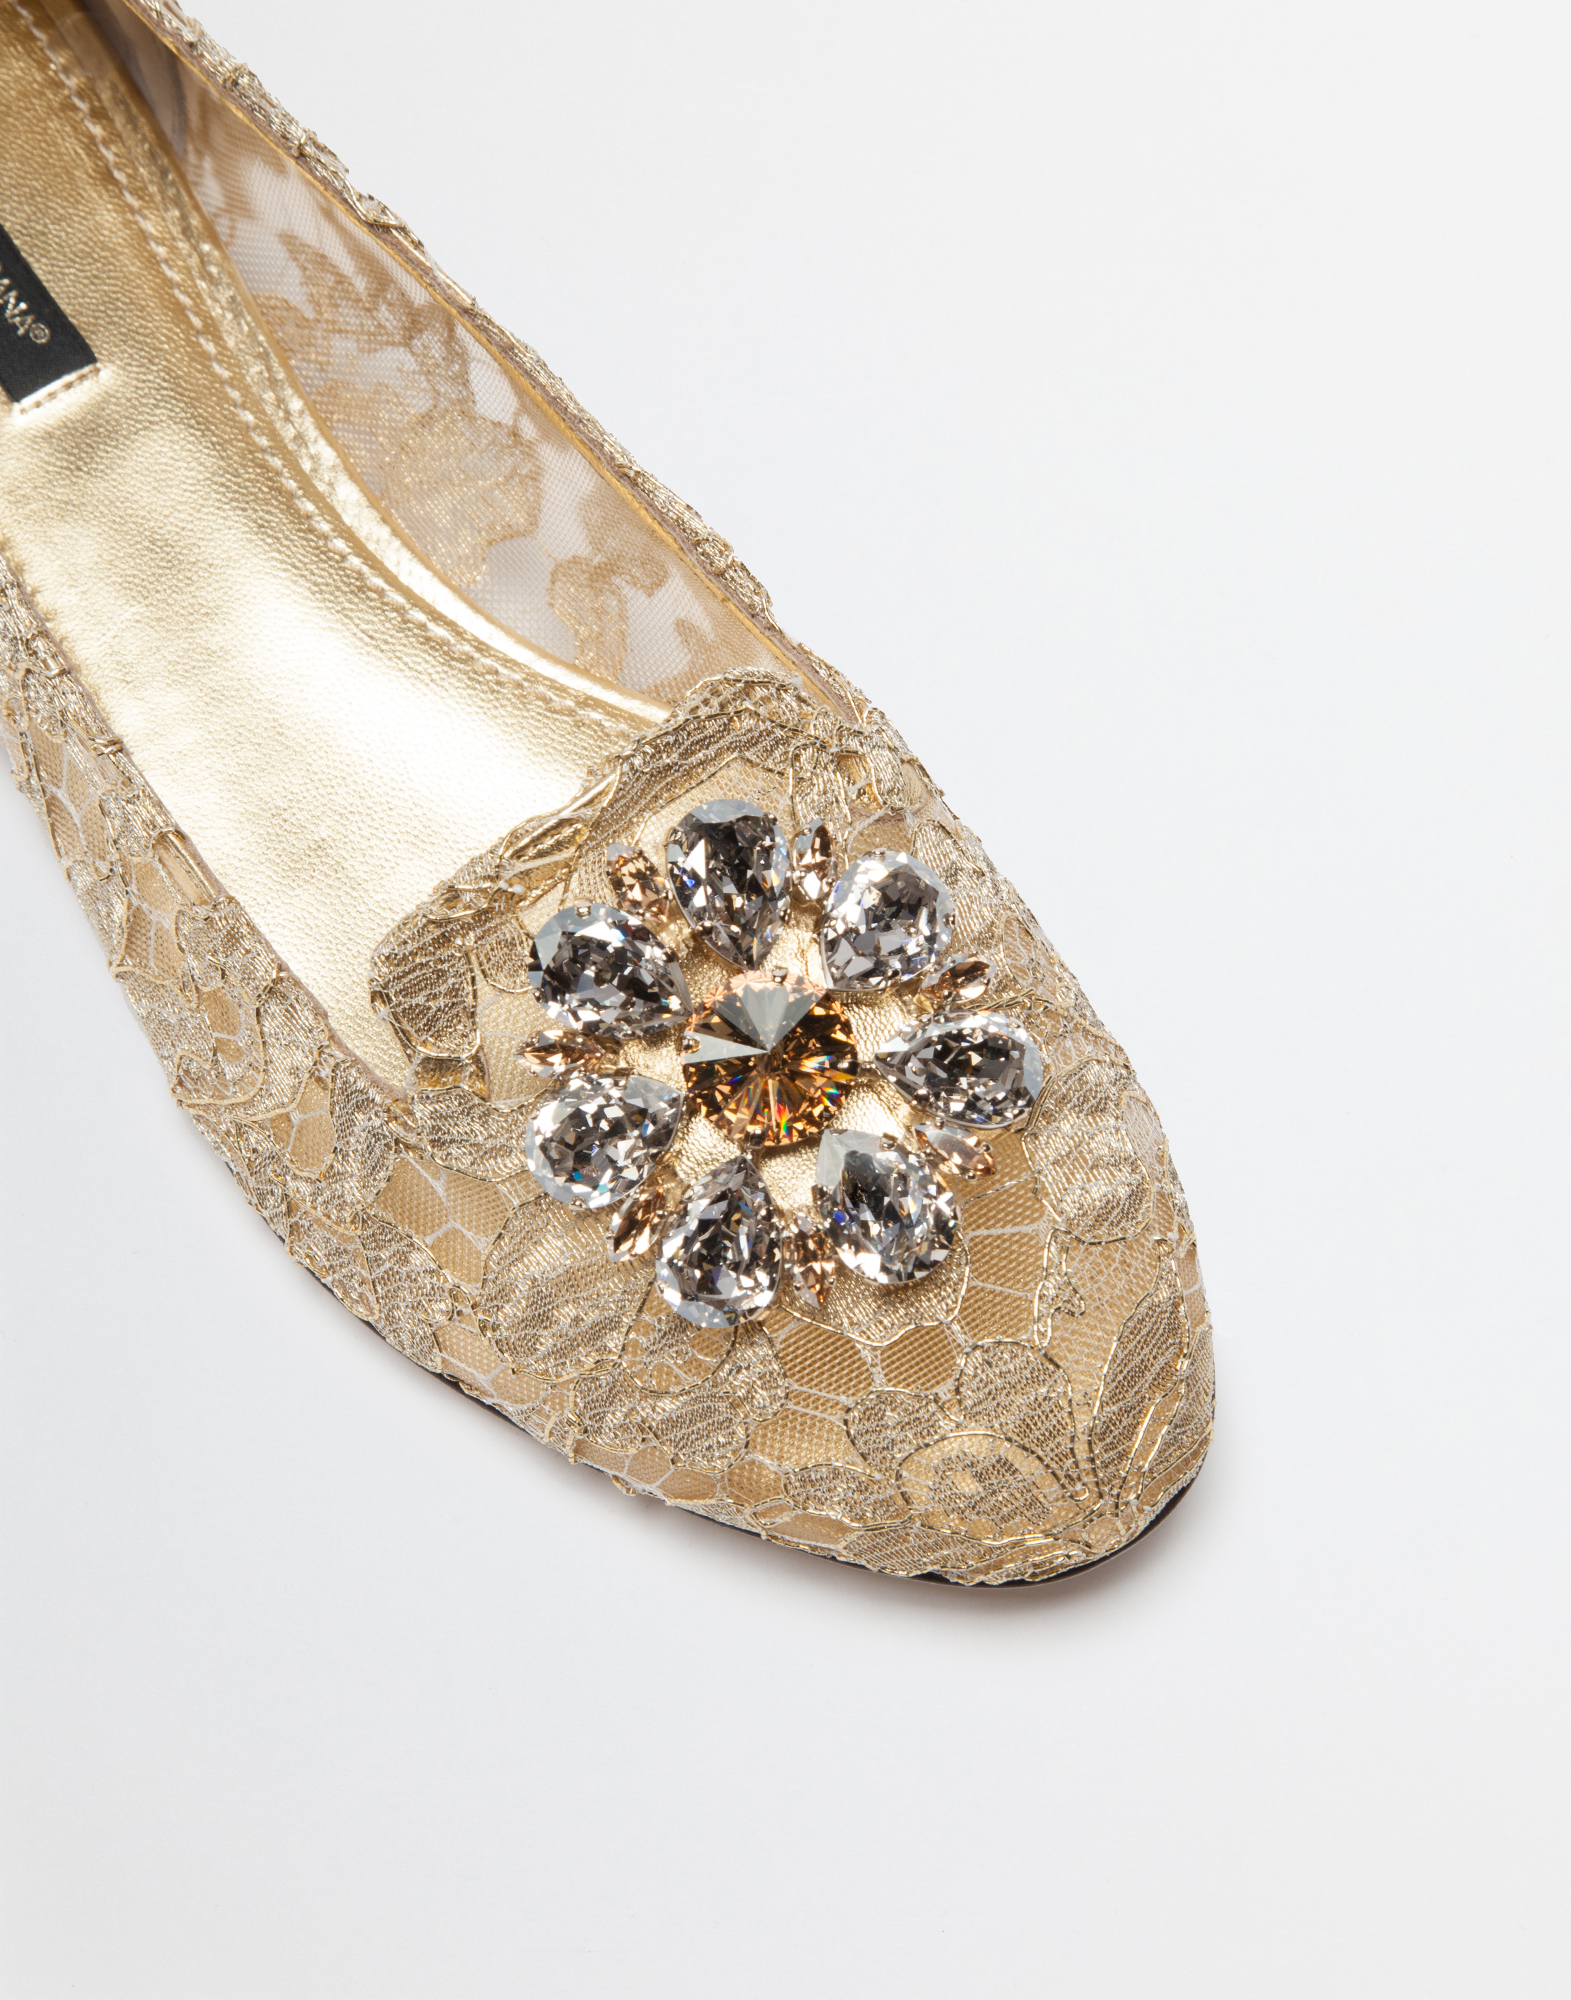 Dolce&Gabbana SLIPPER IN TAORMINA LUREX LACE WITH CRYSTALS